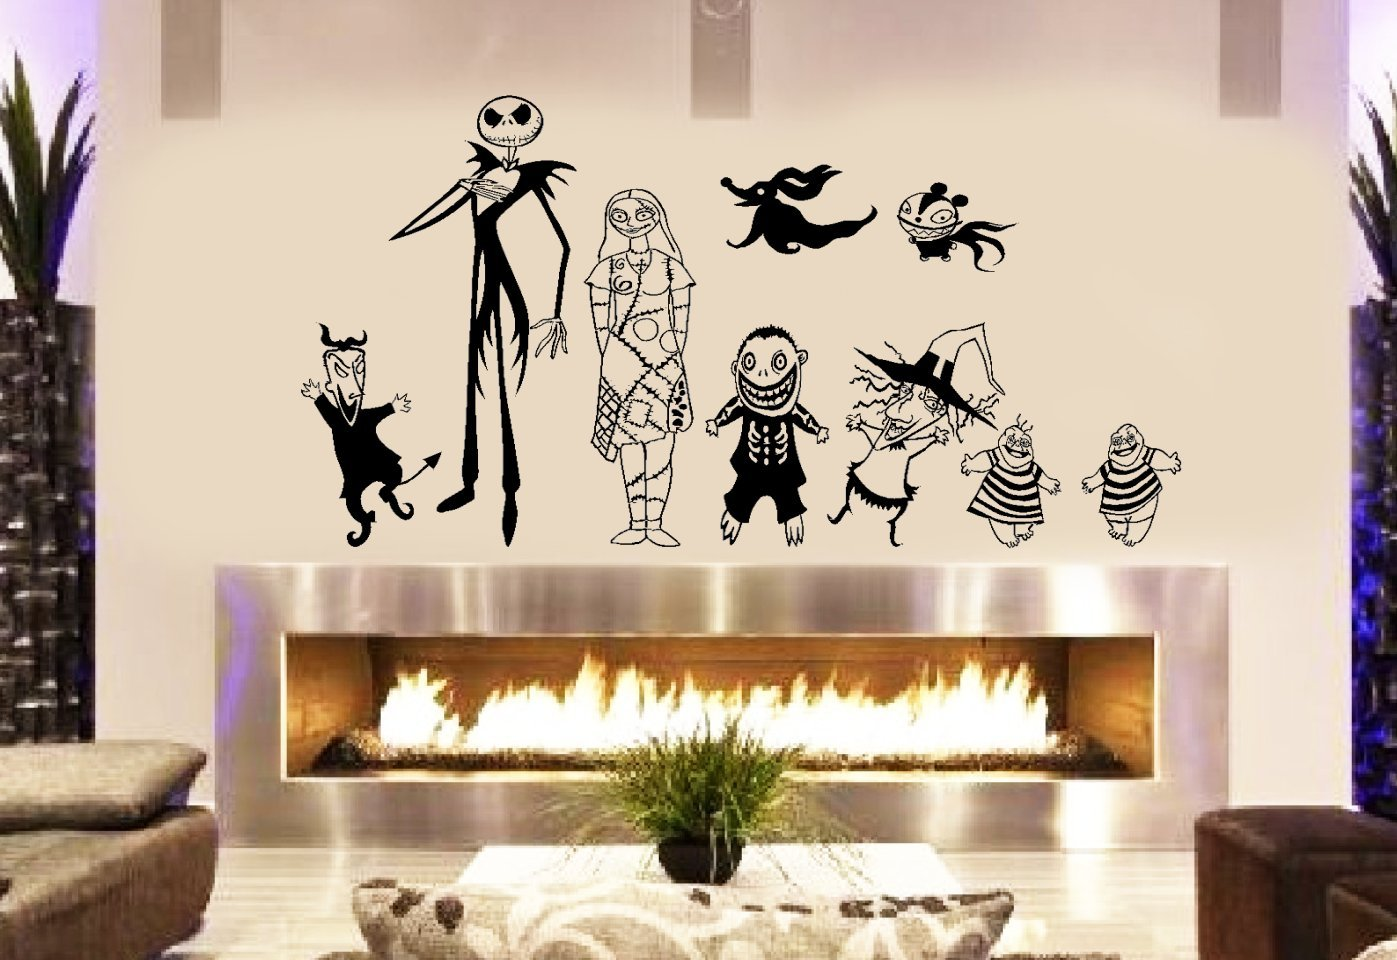 Cheap Family Window Decal, find Family Window Decal deals on line at ...